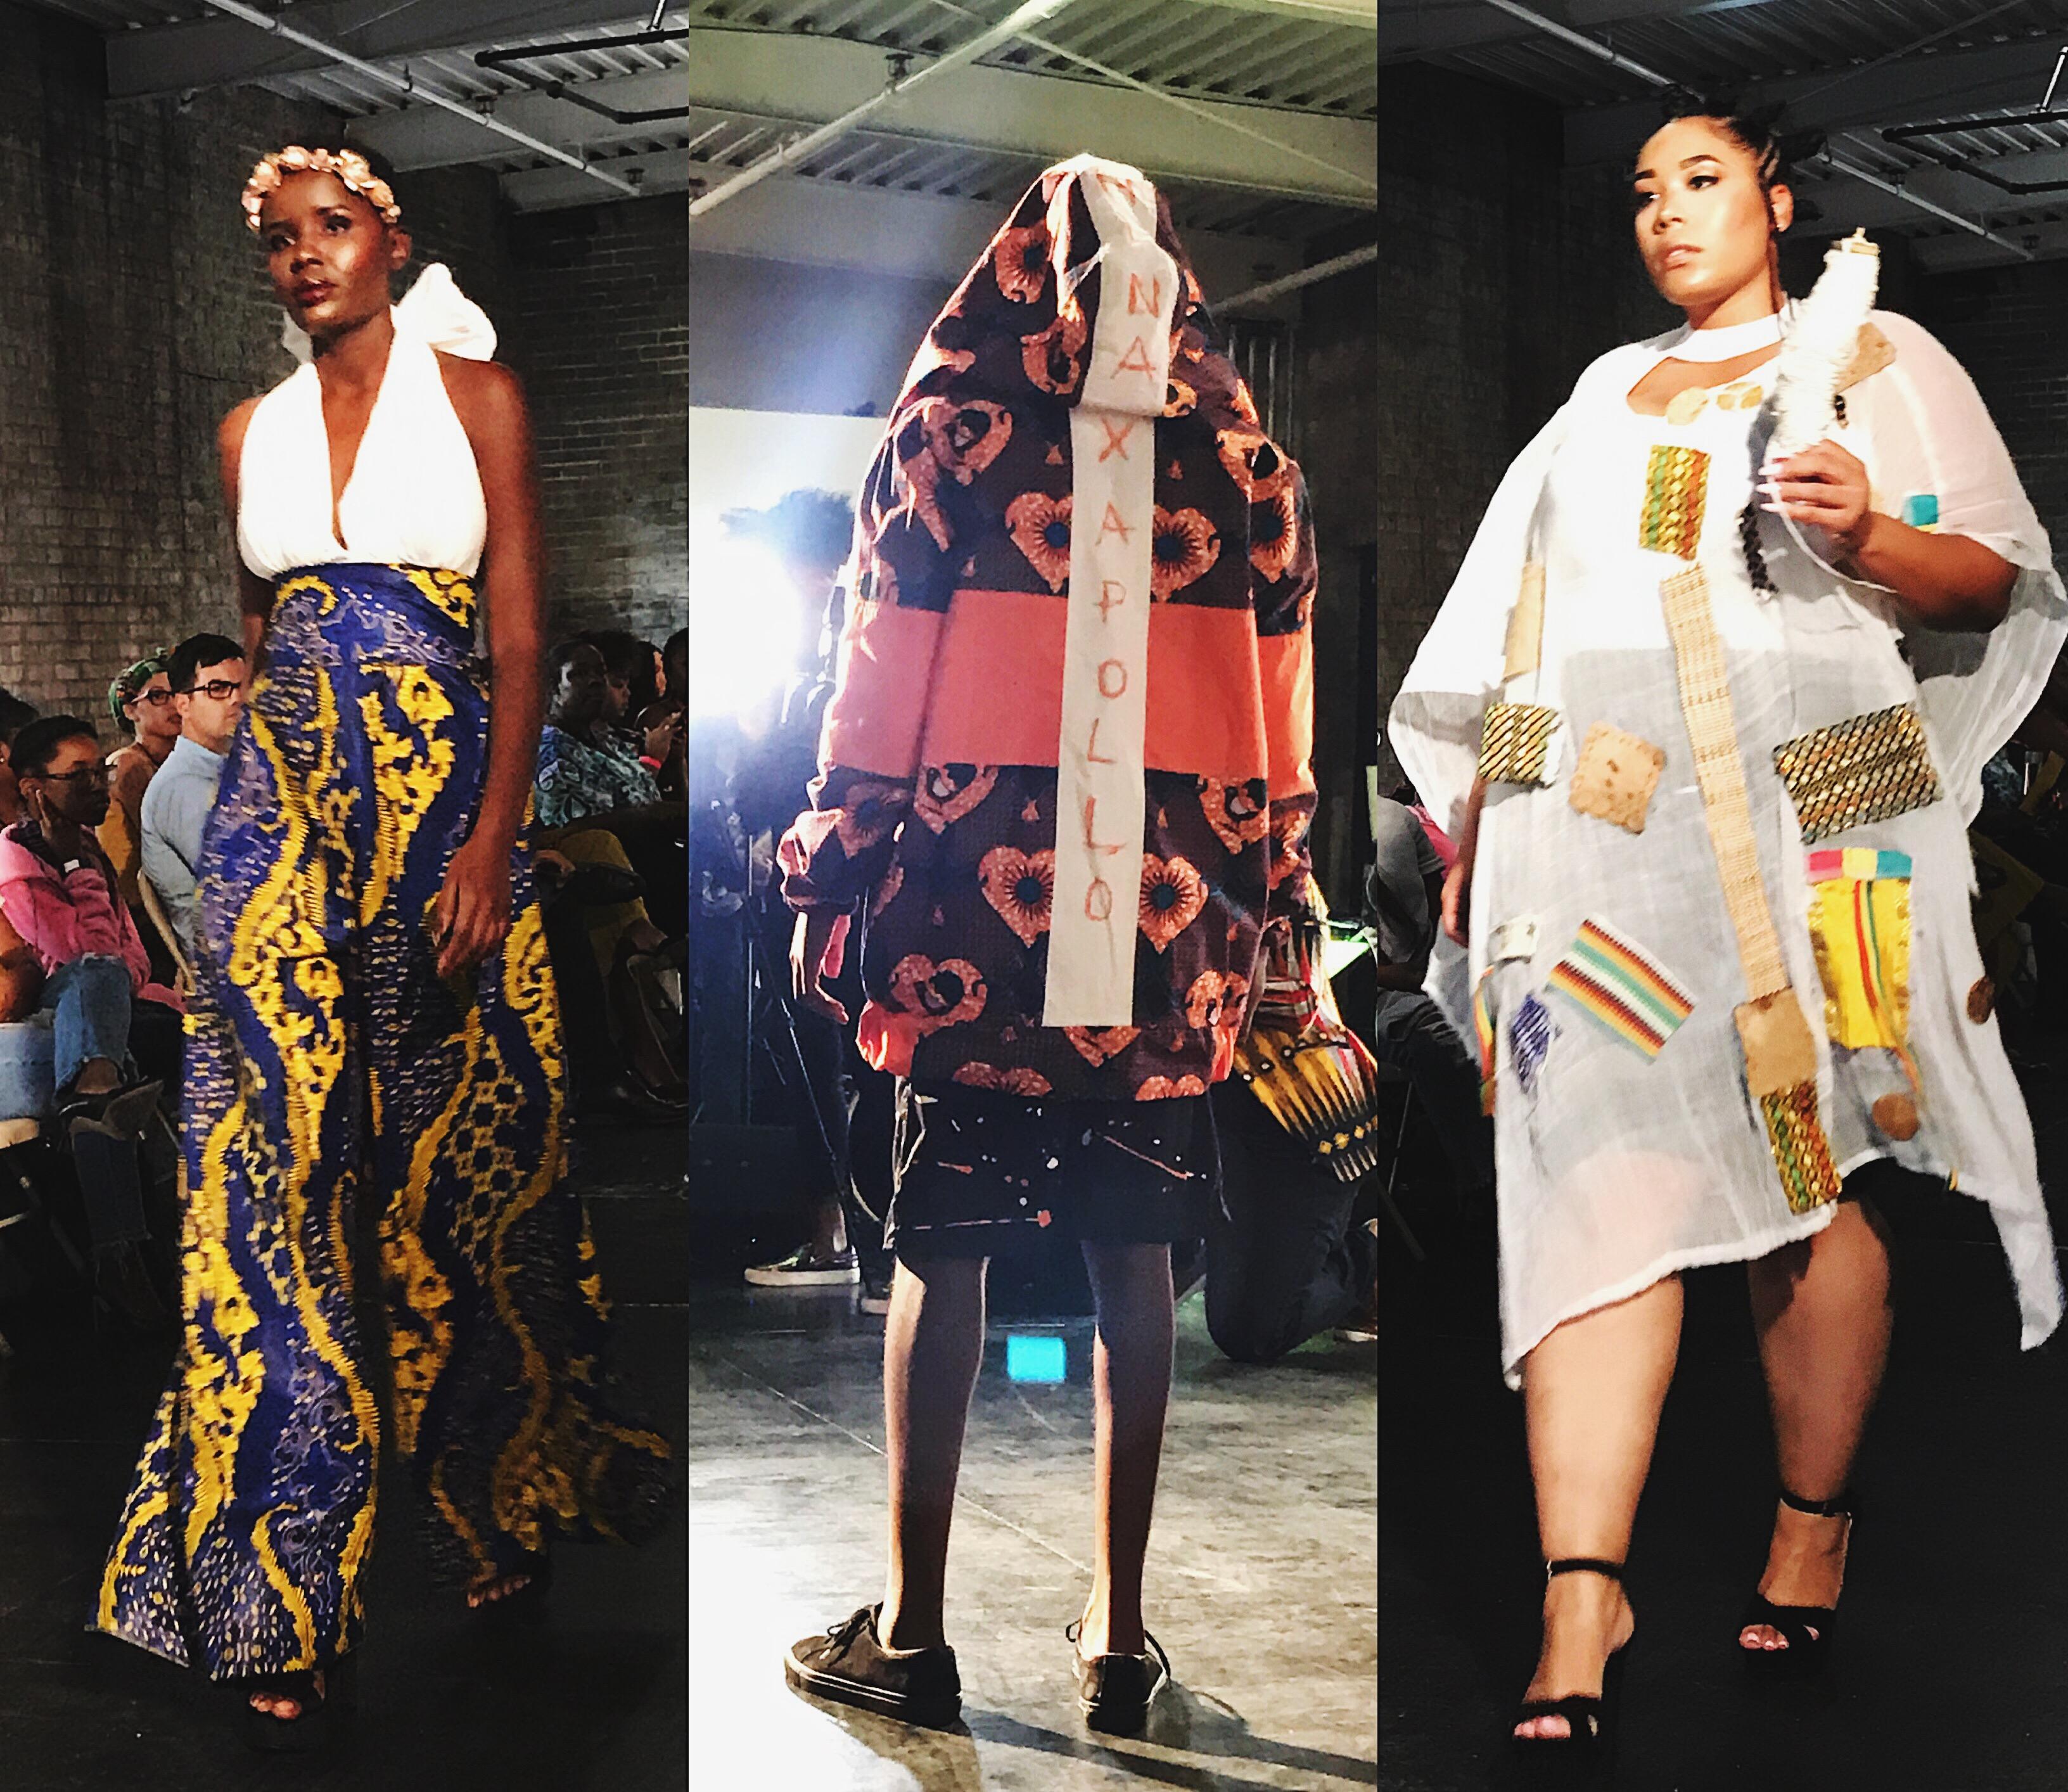 African Fashion week houston kampala uganda nigeria usa united states texas